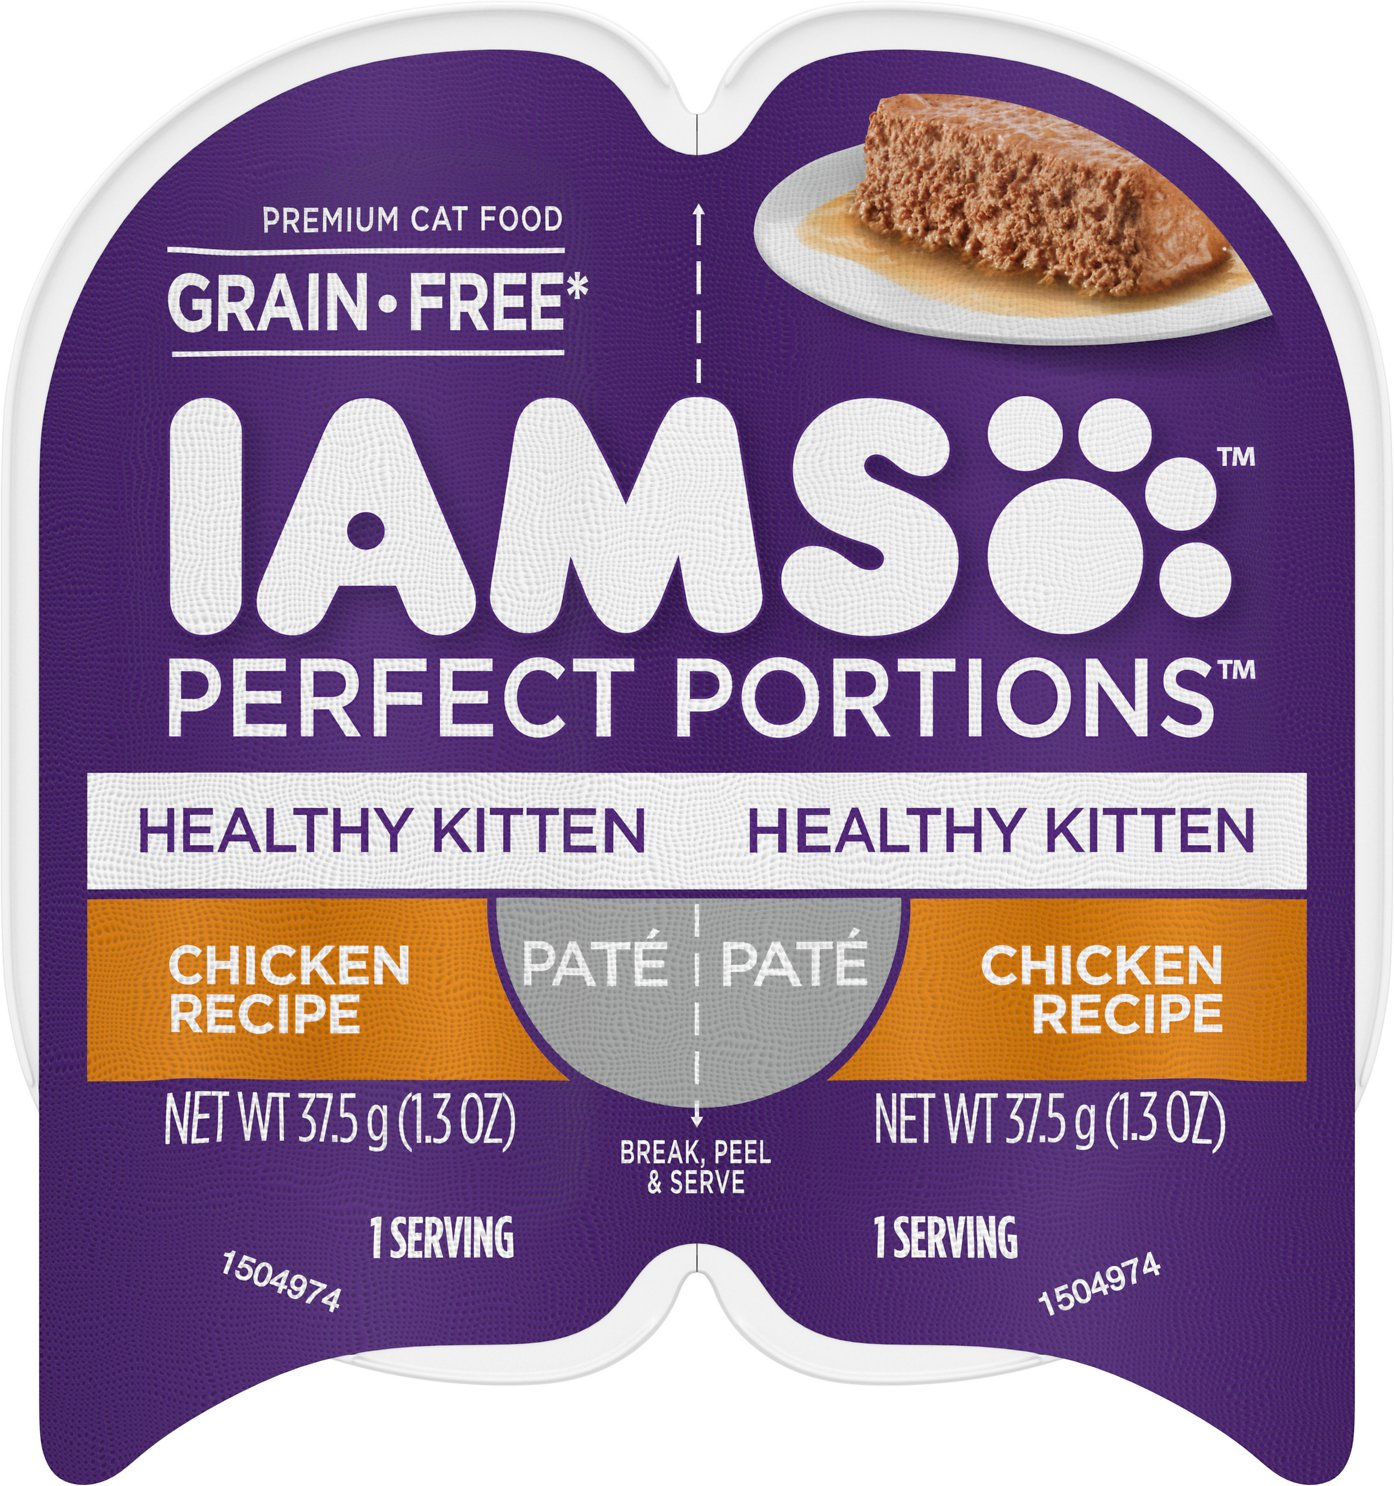 Iams Perfect Portions Healthy Kitten Chicken Recipe Pate Grain Free Cat Food Trays 2 6 Oz Case Of 24 Twin Packs Chewy Com